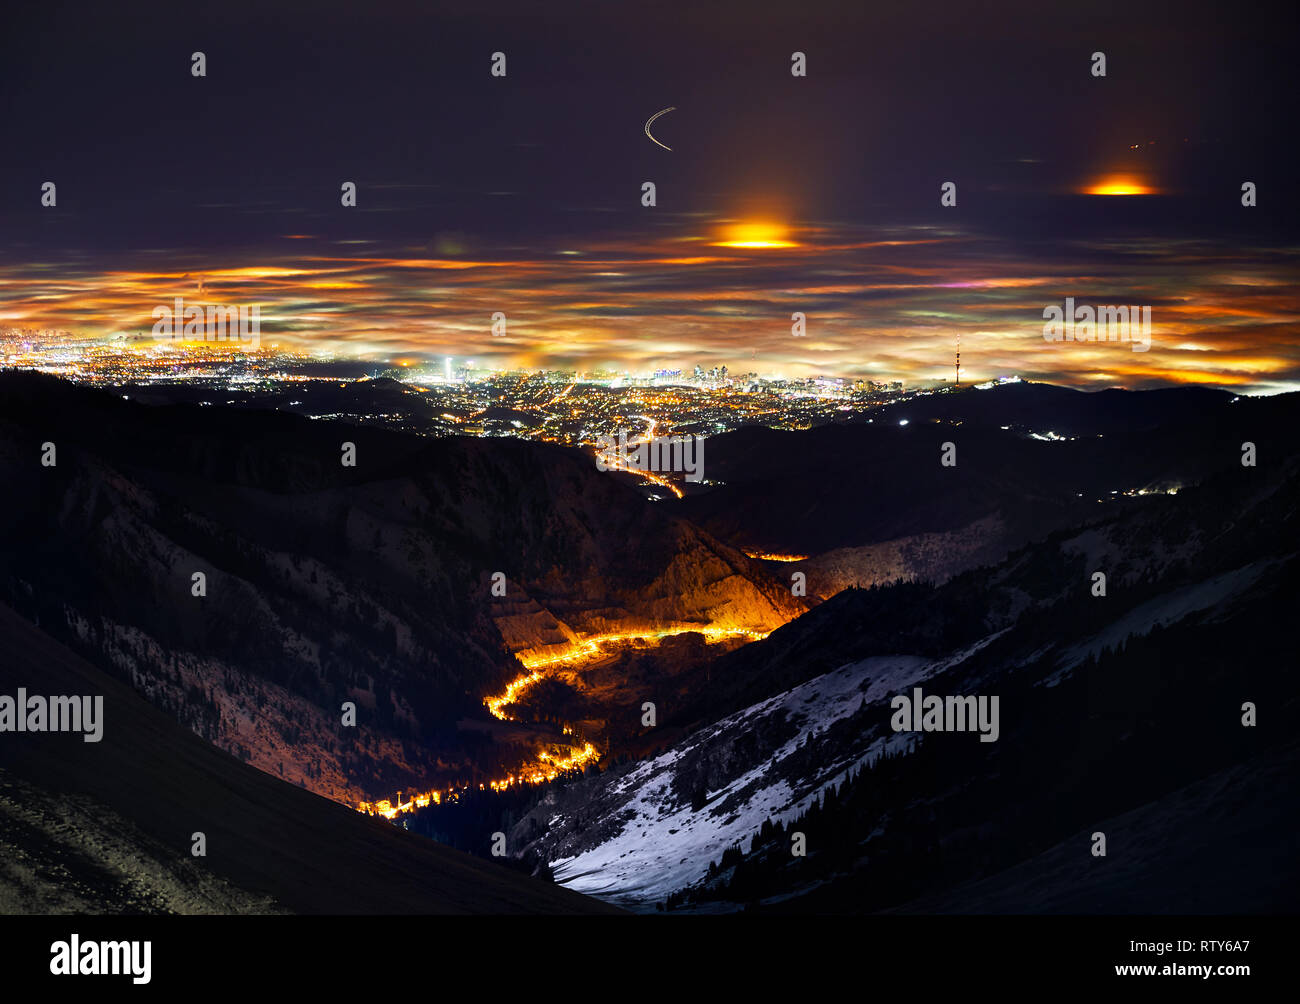 Almaty city lights at foggy winter night view from the mountains, Kazakhstan, Central Asia. Stock Photo